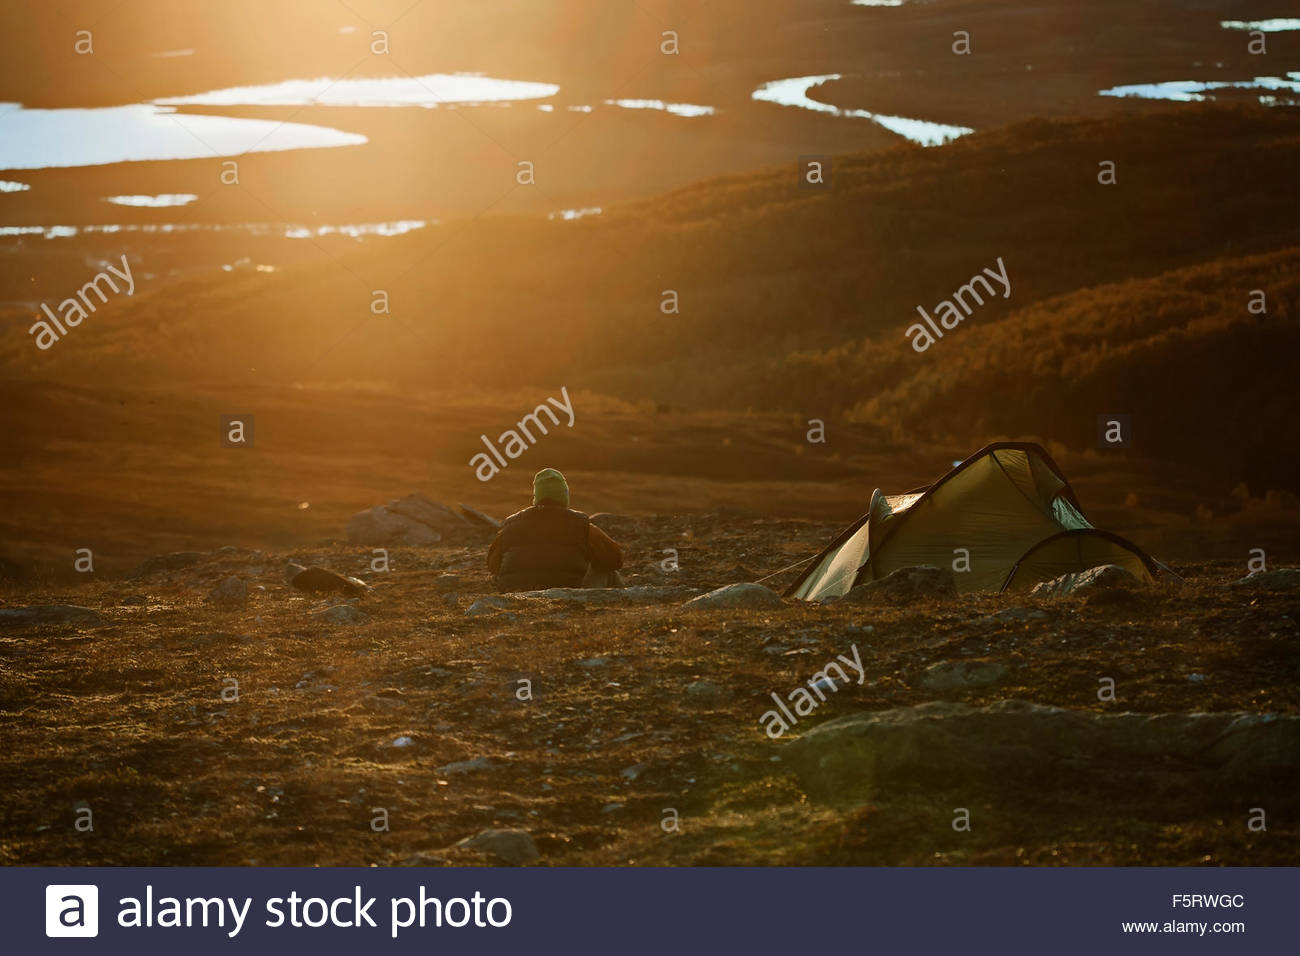 Sweden, Vasterbotten, Hemavan, Man camping at sunset - Stock Image